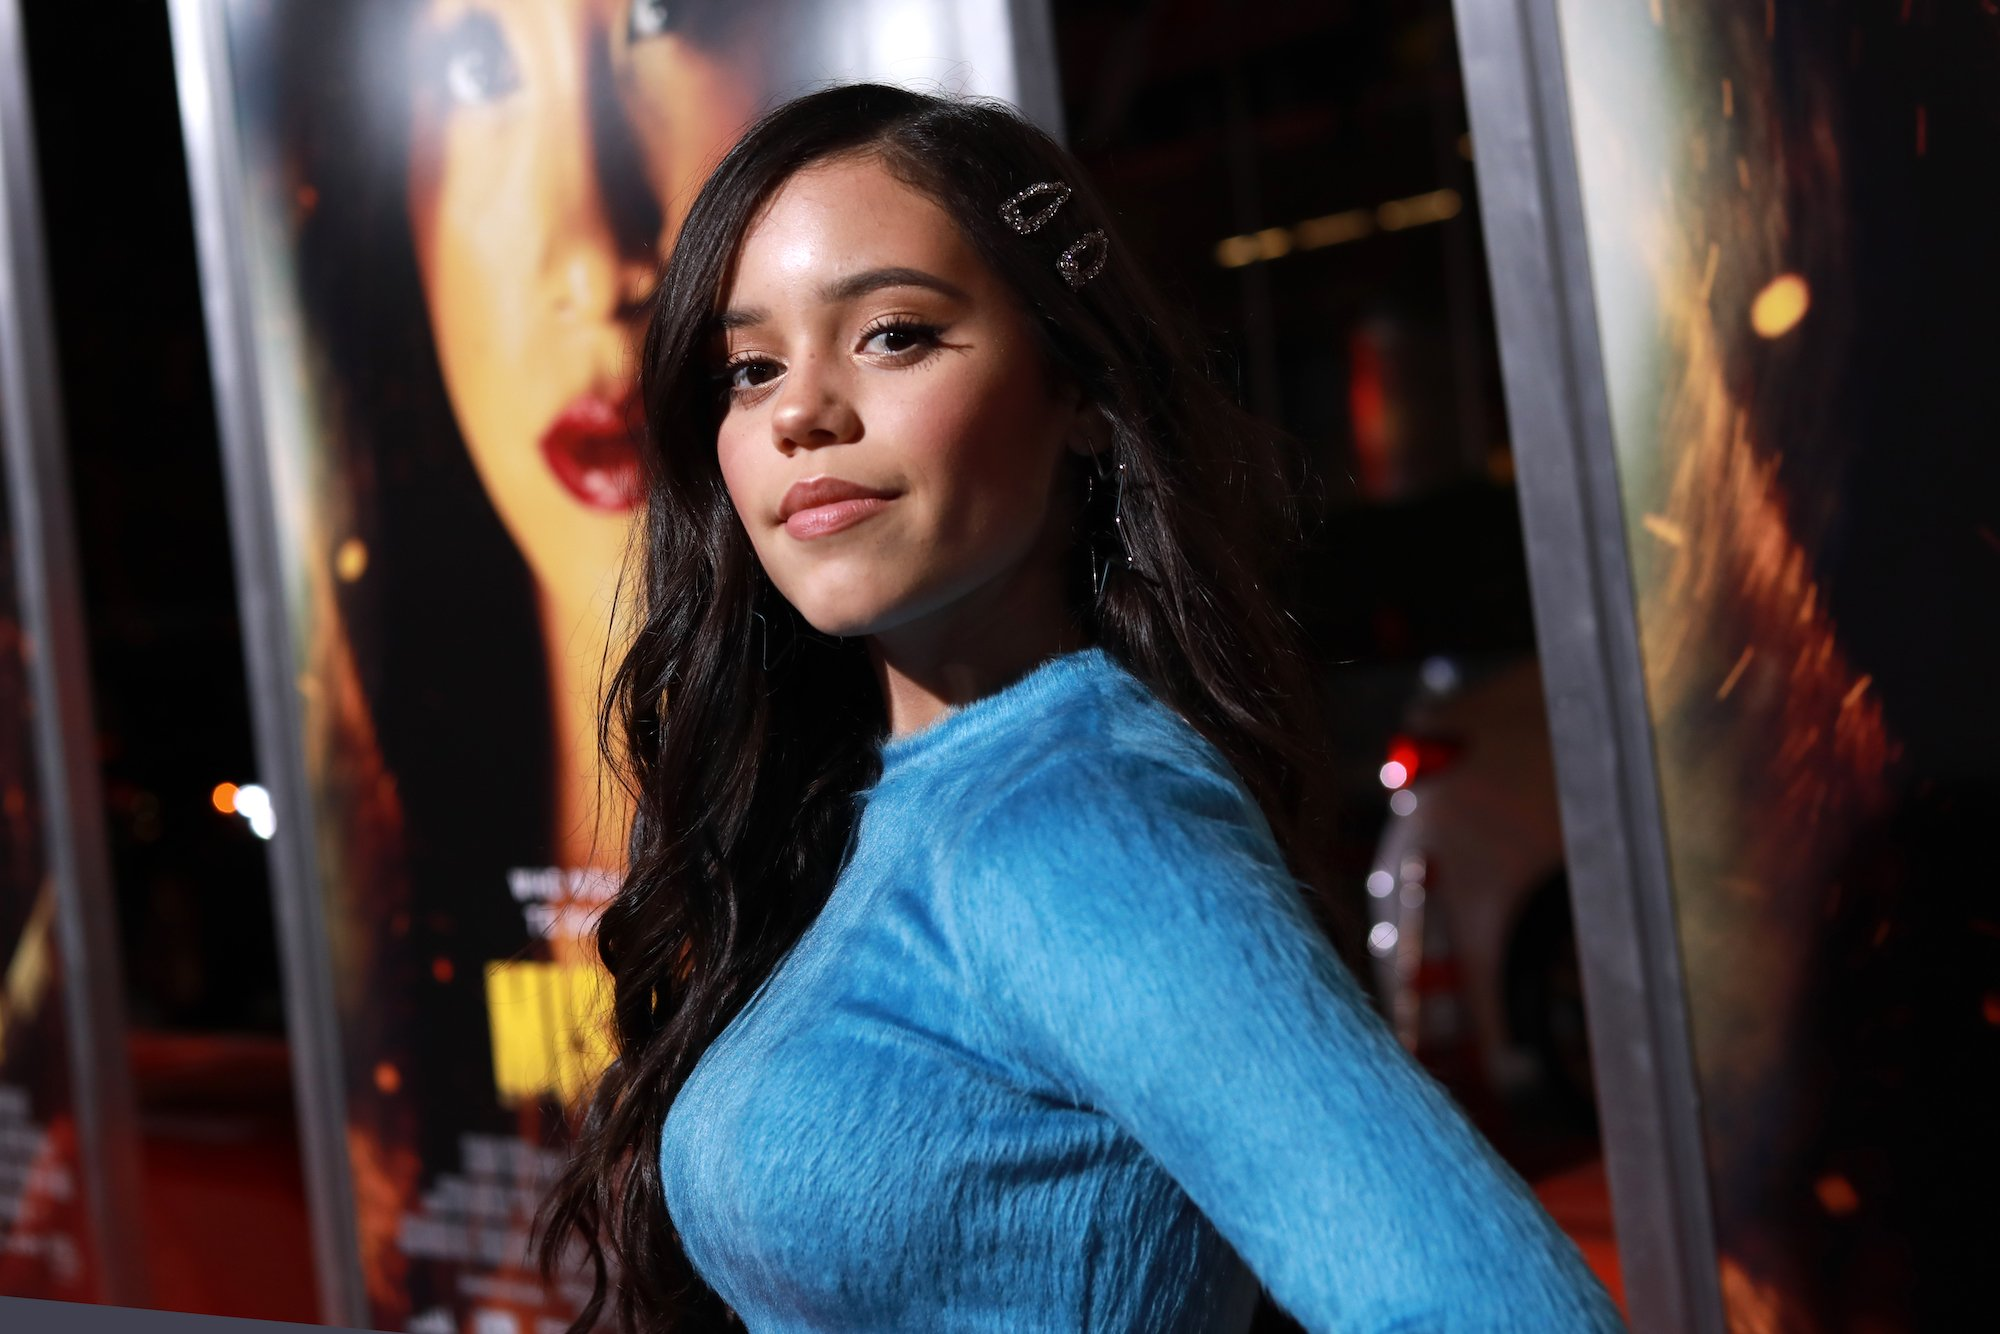 Jenna Ortega Gushes Over 'Dream Come True' Role In 'Scream 5,' Talks 'You' Character And More!